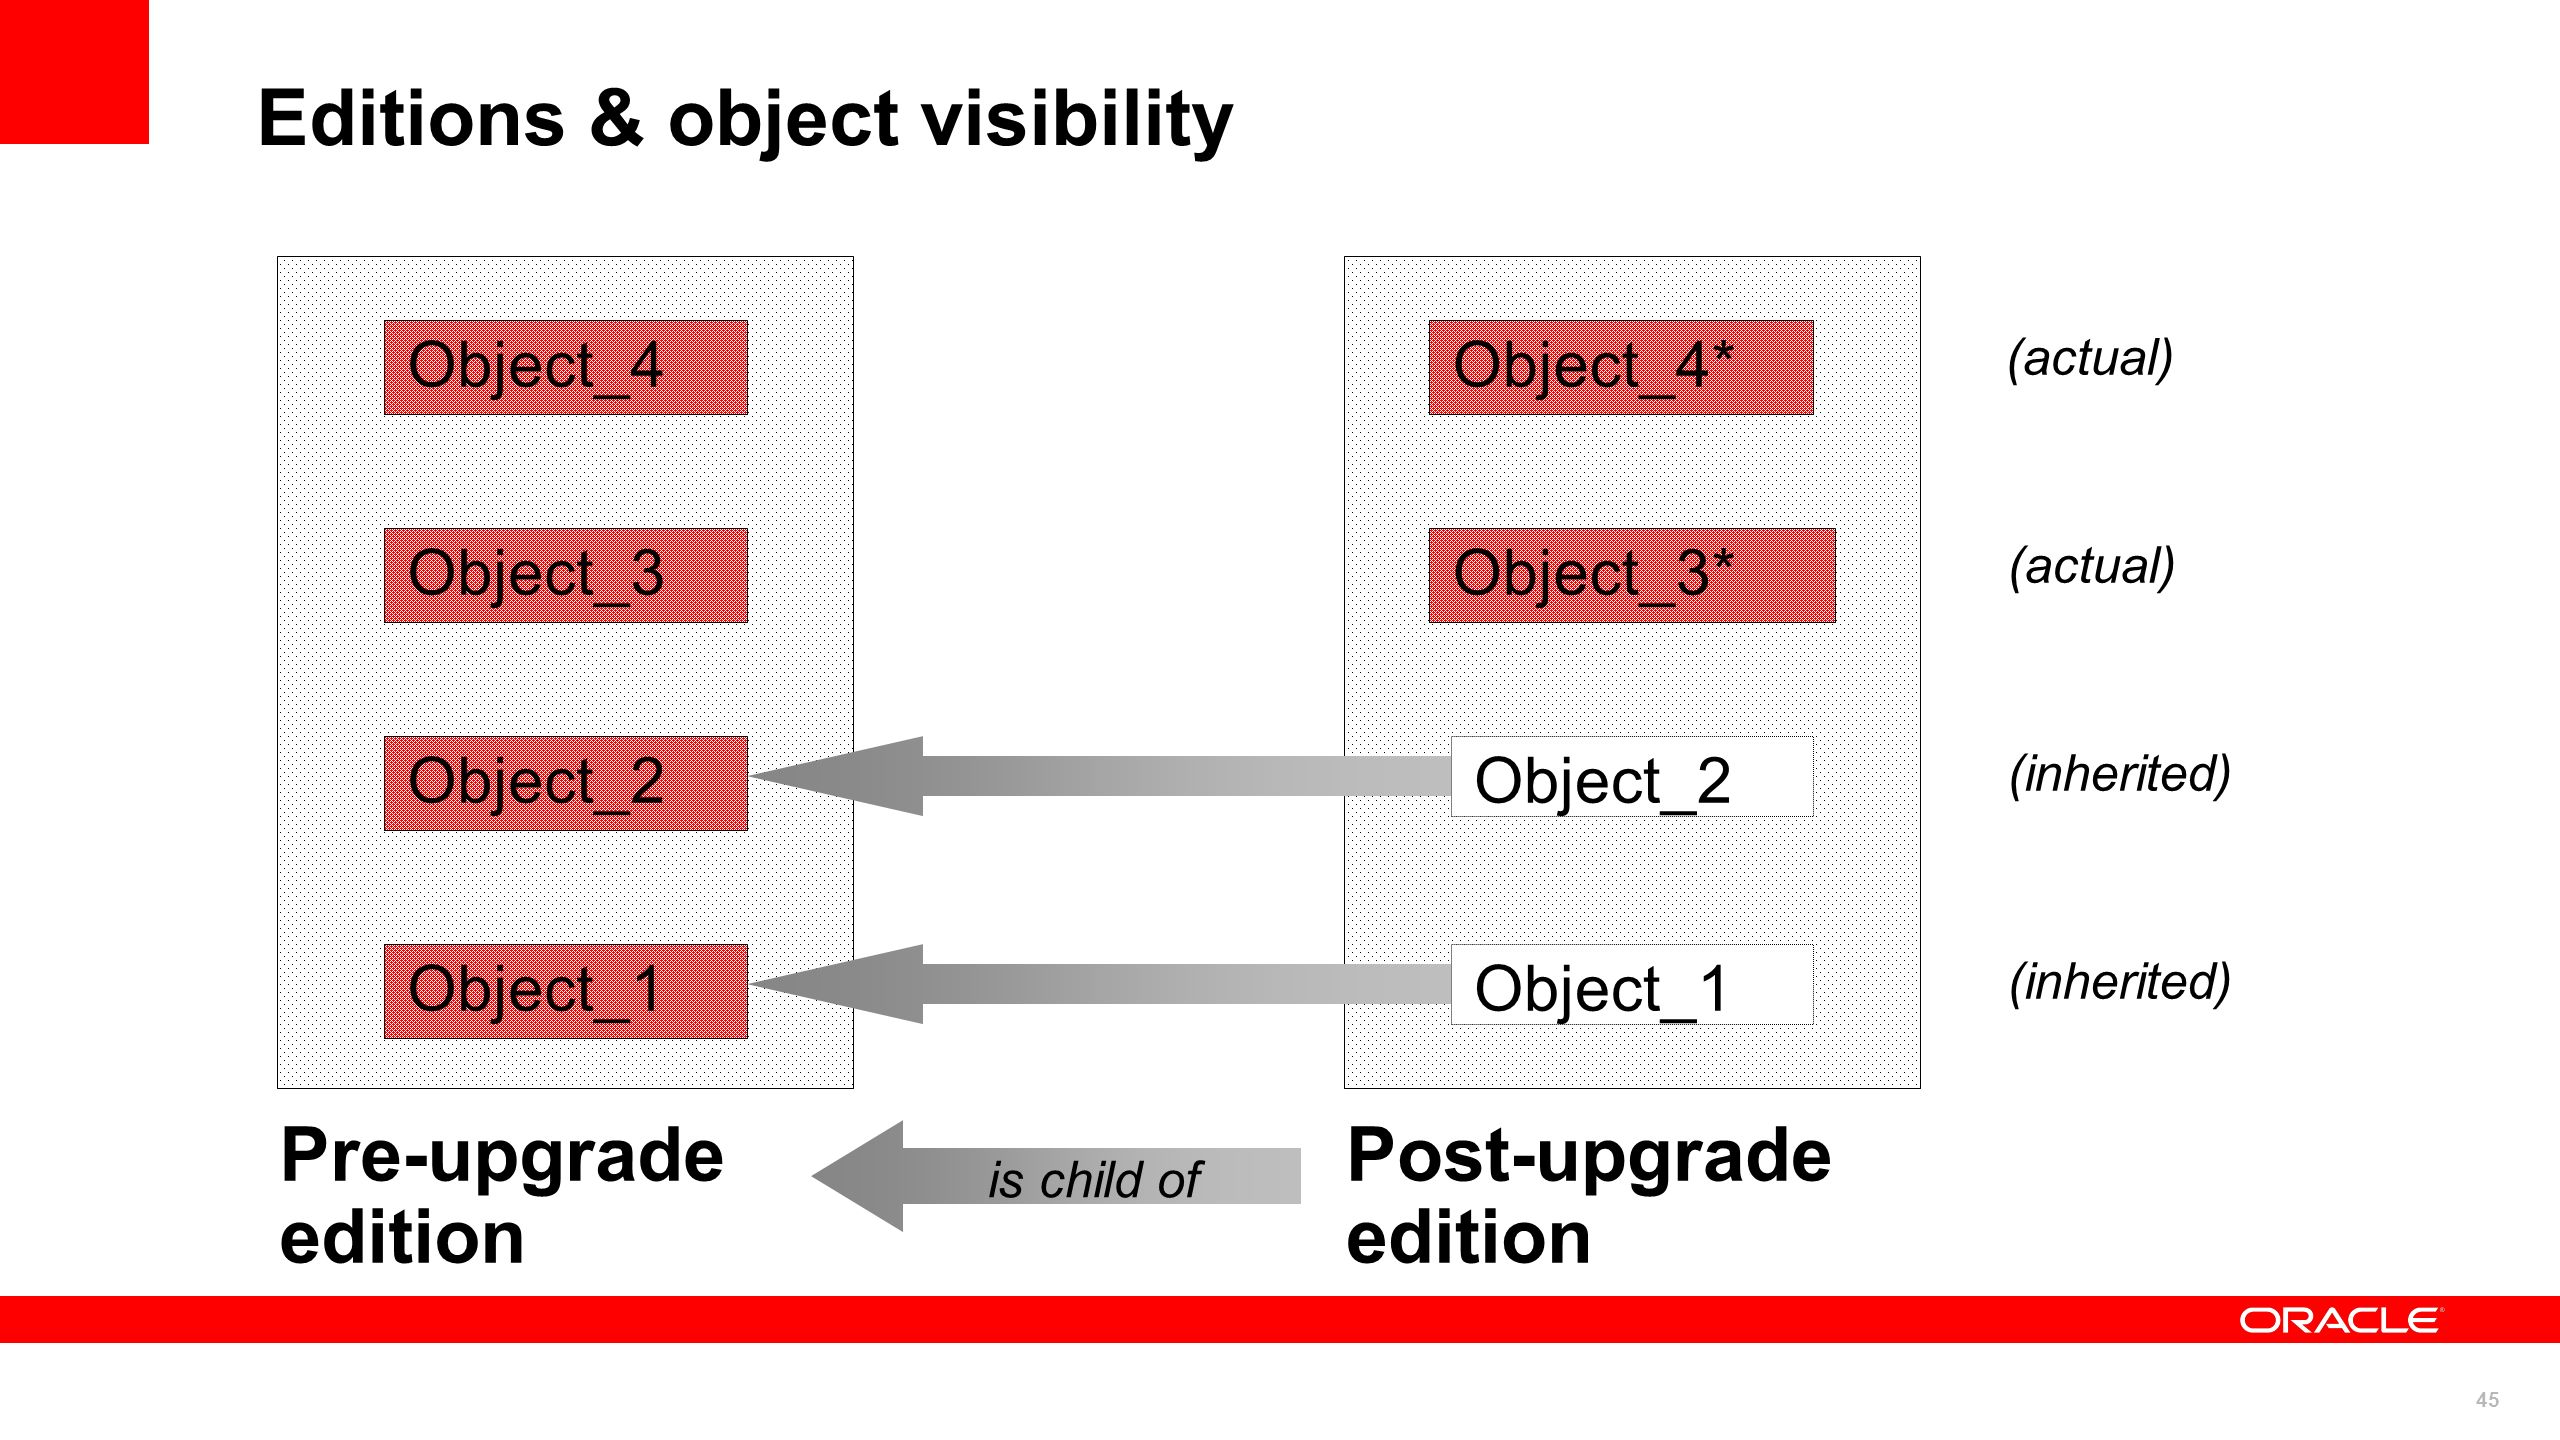 45 Editions & object visibility Object_4 Object_3 Object_2 Object_1 Object_4* Object_3* Object_2 Object_1 Pre-upgrade edition Post-upgrade edition is